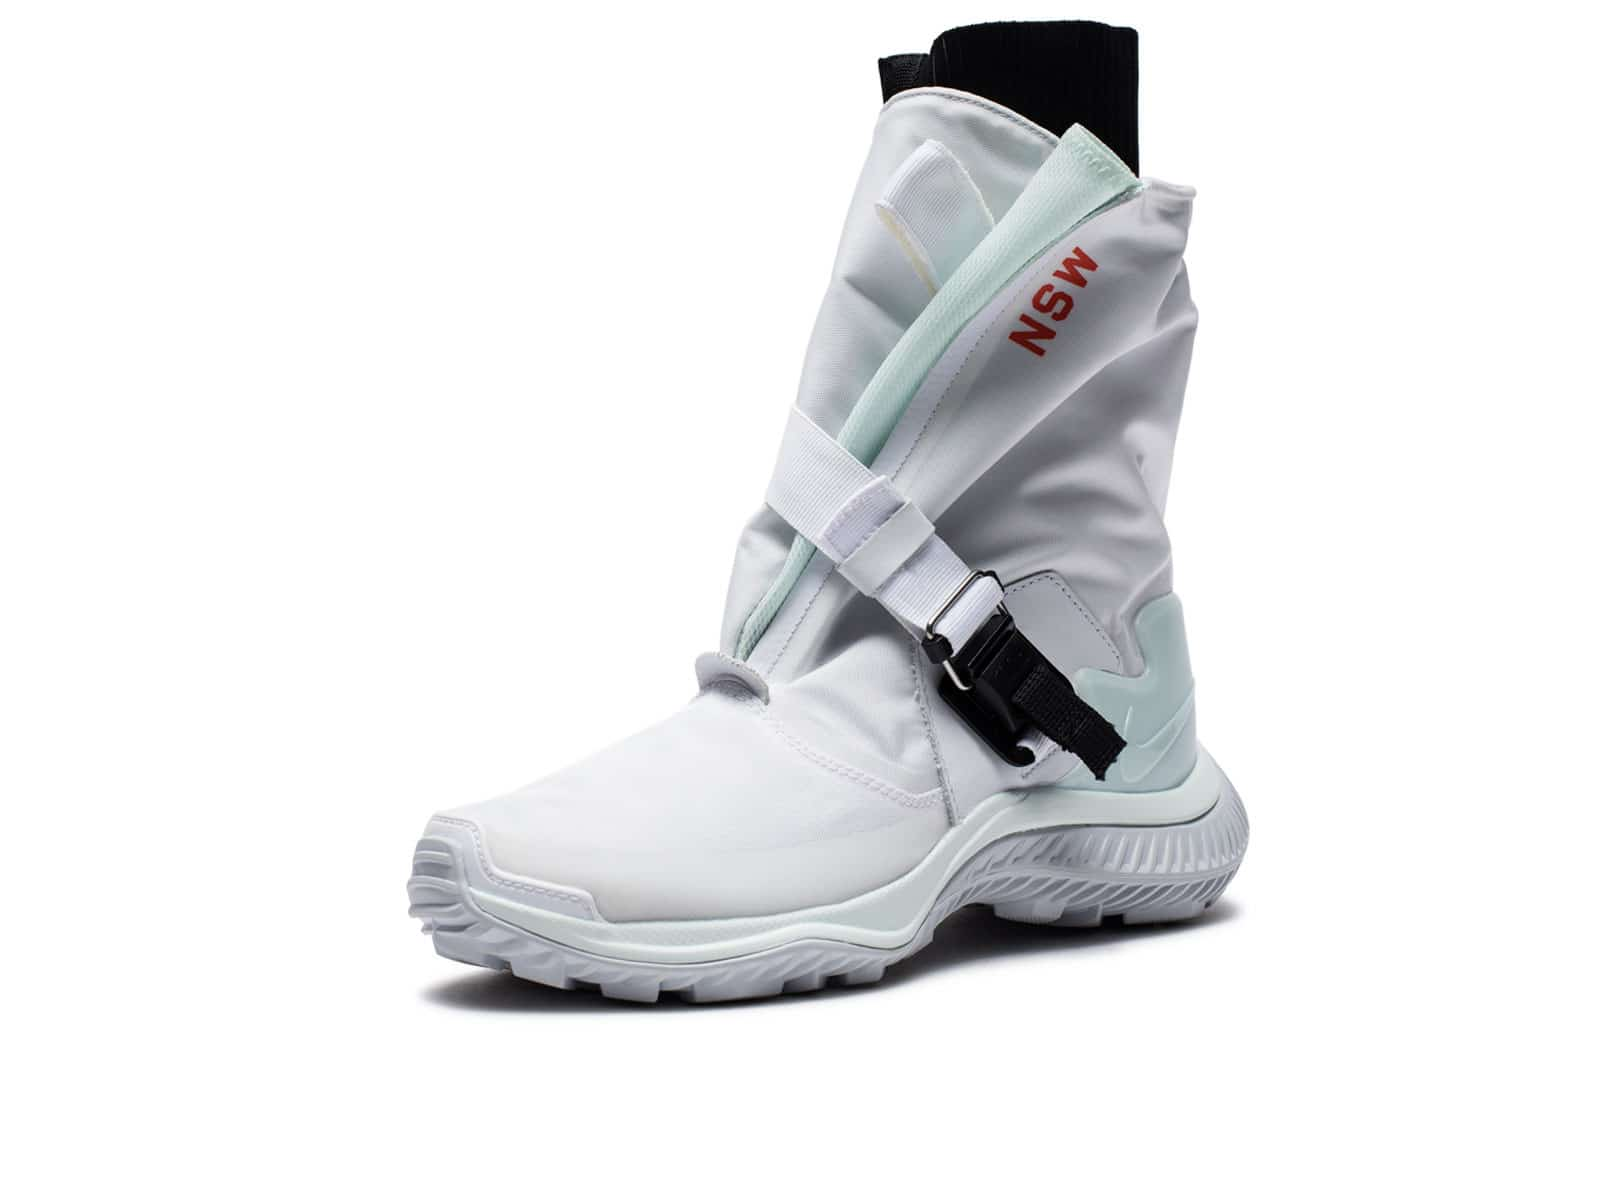 new product 4179c 56d74 WOMENS GAITER BOOT - WHITEBARELYGREENBLACKPUREPLATINUM